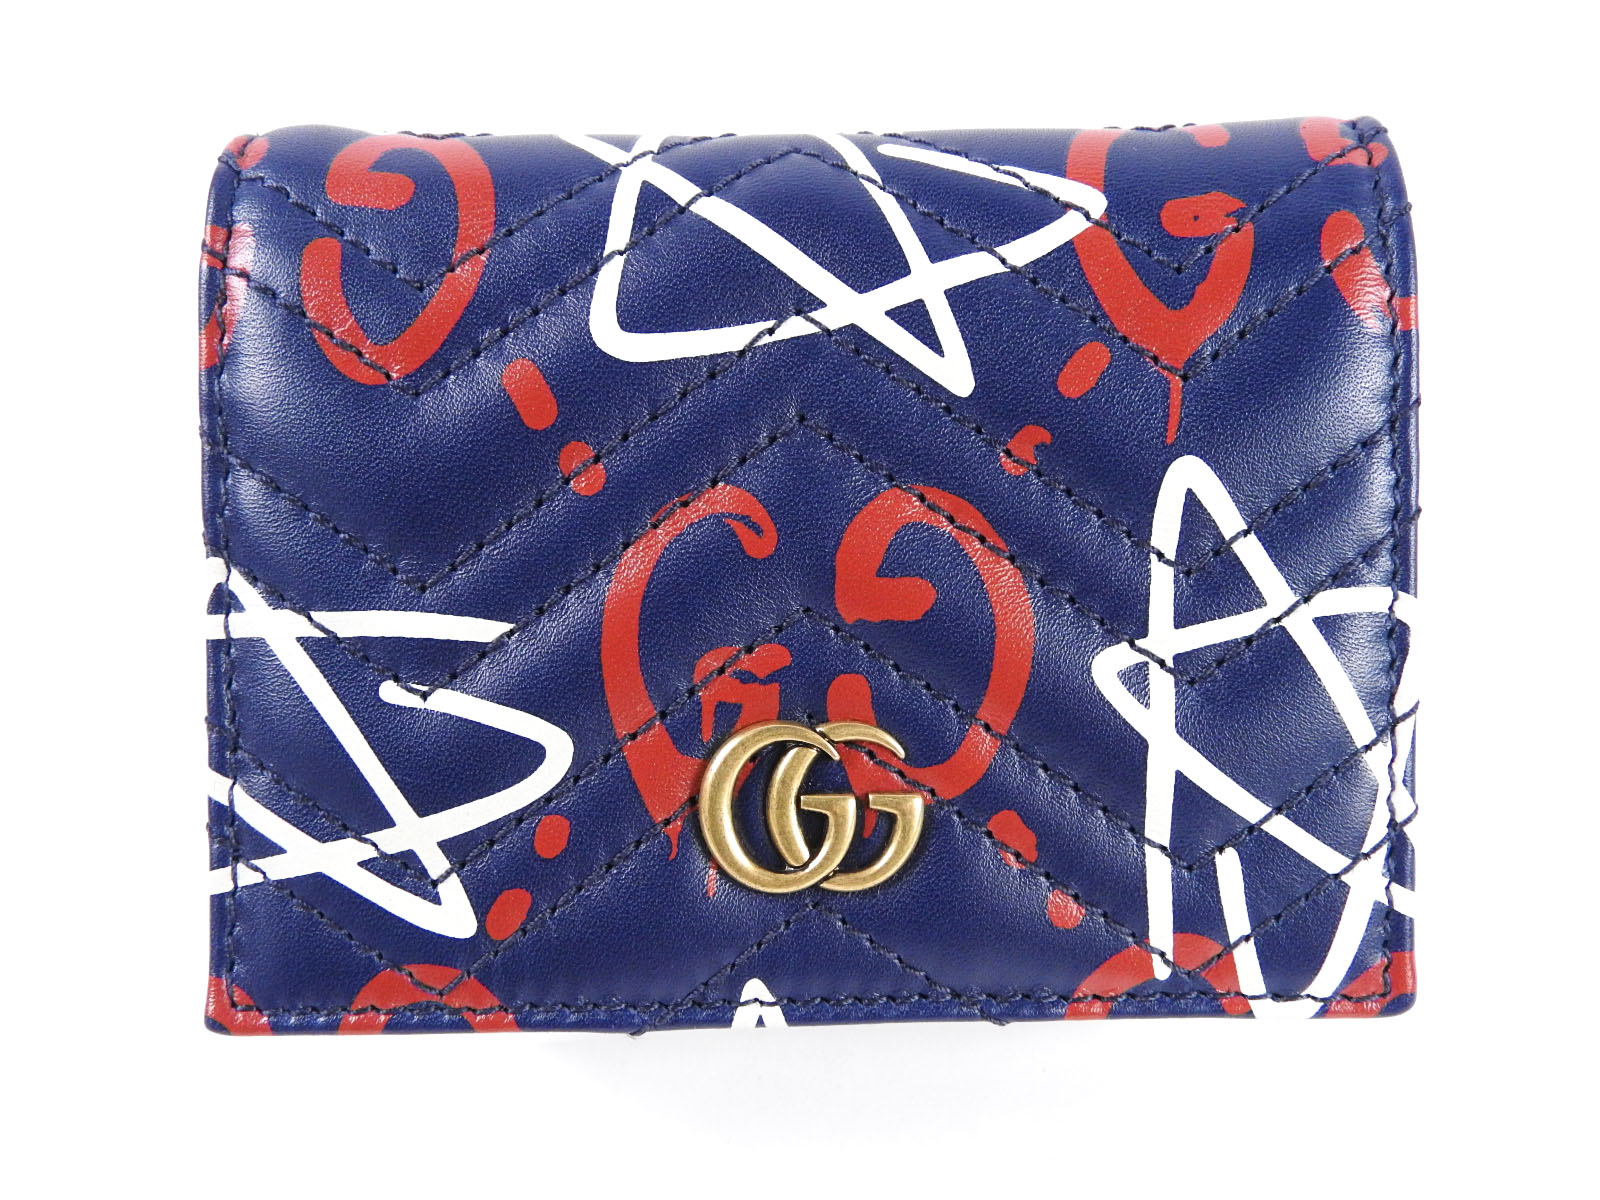 Auth gucci ghost business card case bill wallet calf leather navy auth gucci ghost business card case bill wallet calf leather navy 449421 a 6349 colourmoves